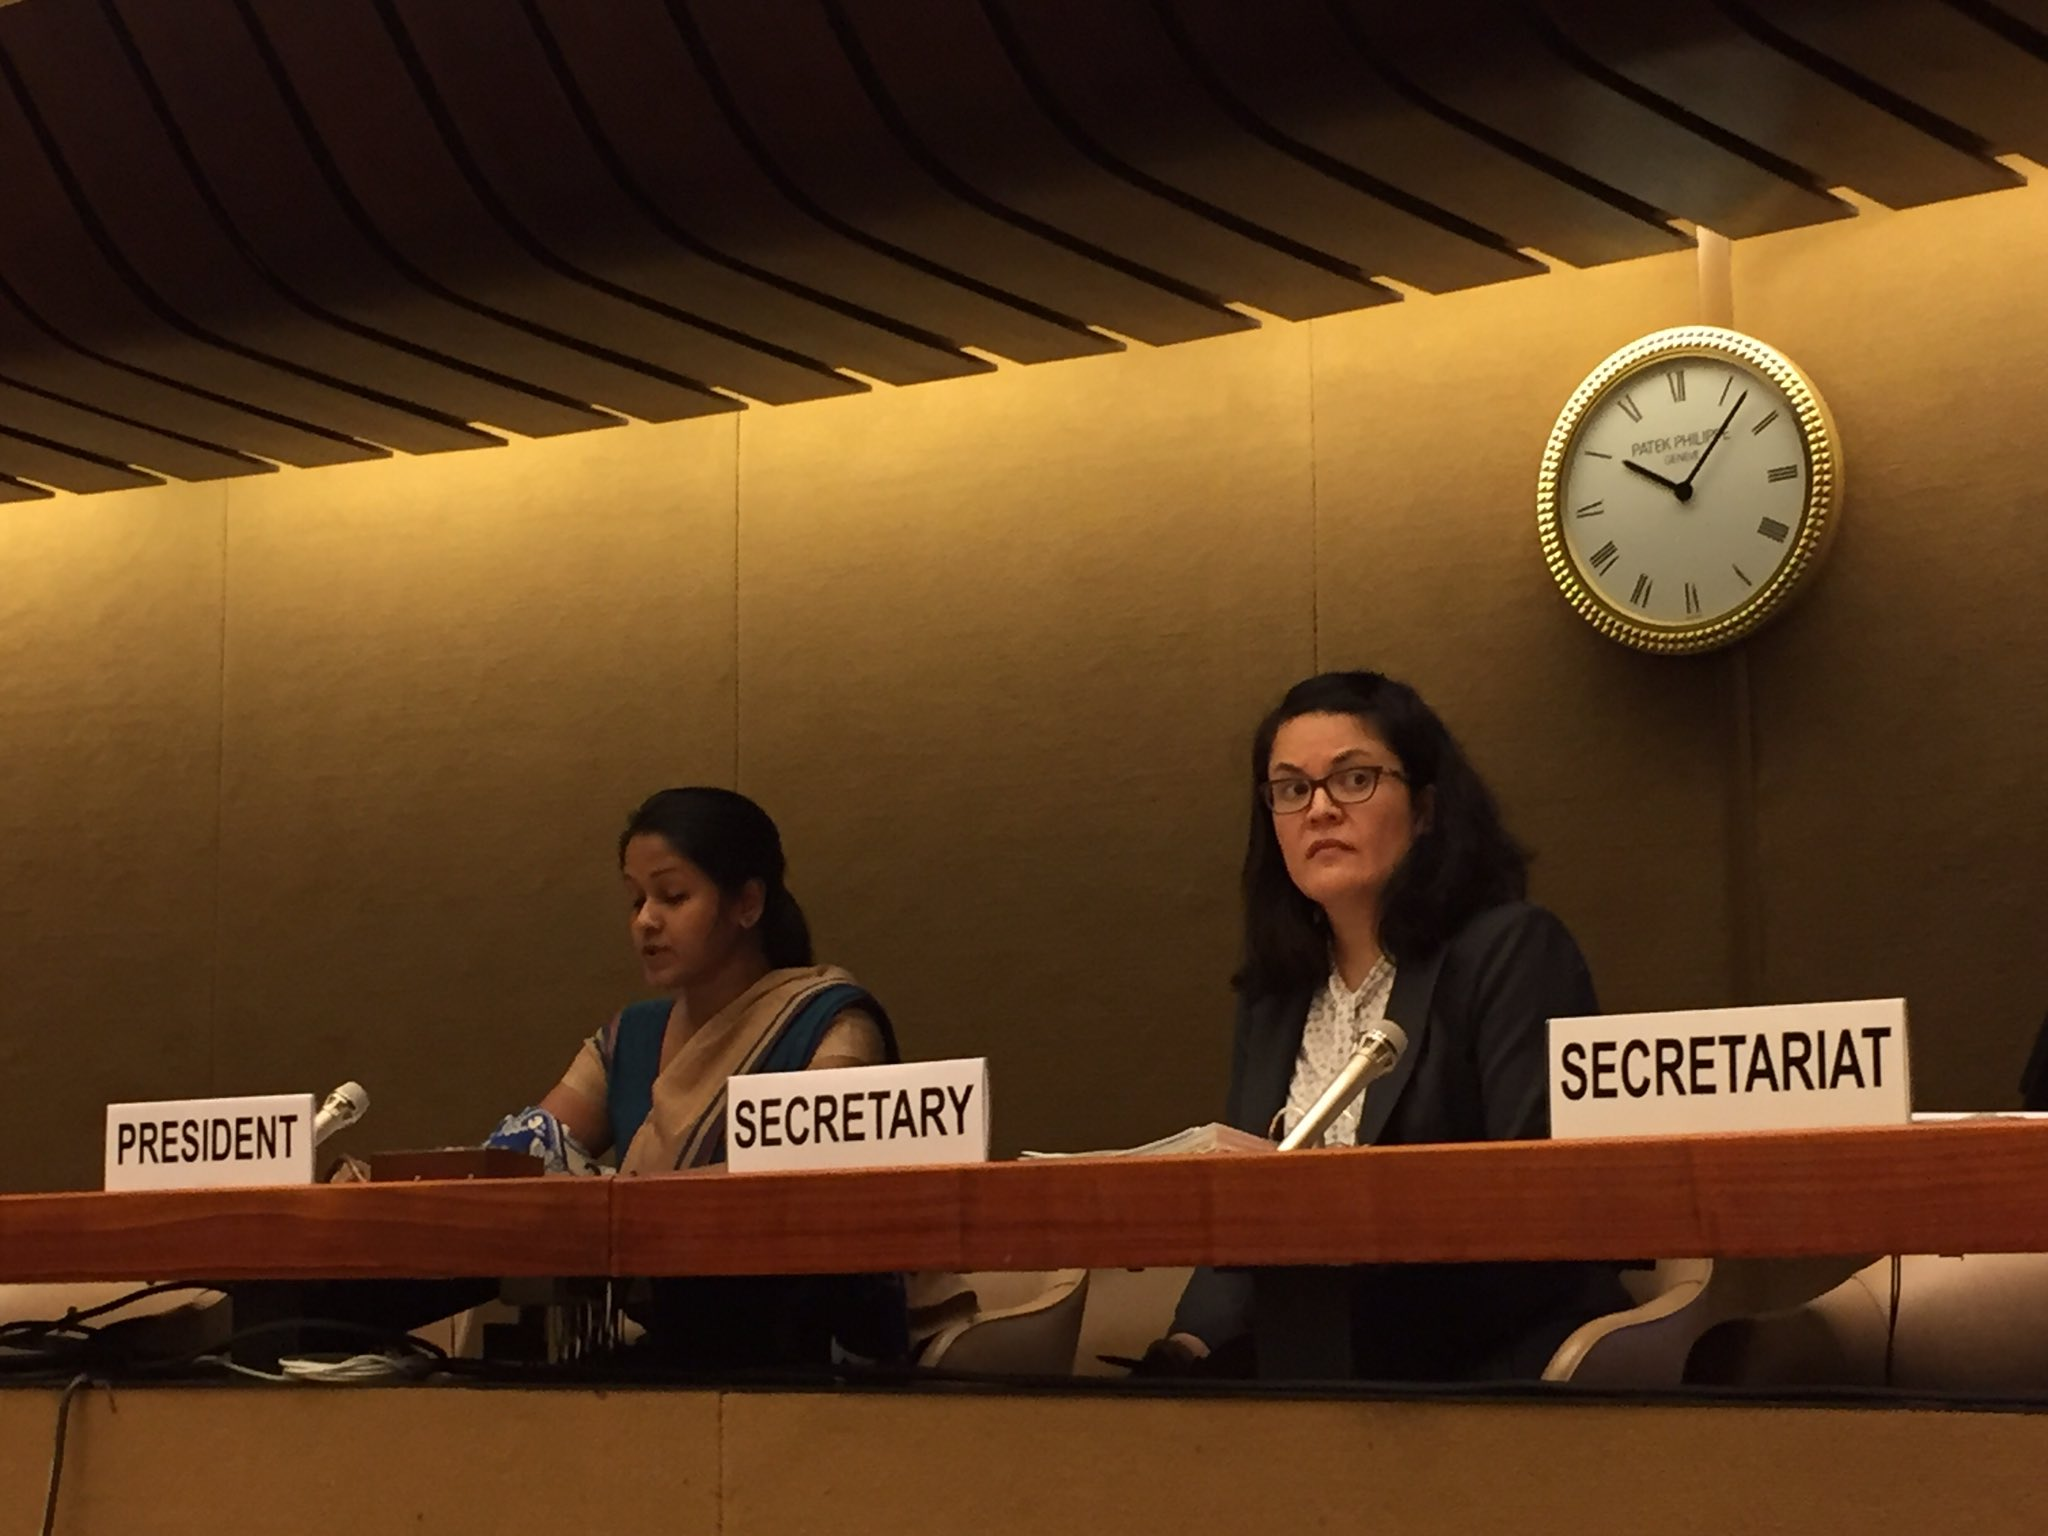 Sri Lanka as president of last Convention on Conventional Weapons meeting invites Pakistan to preside over this 5th Review Conference #CCWUN https://t.co/6dc1jtxKIv